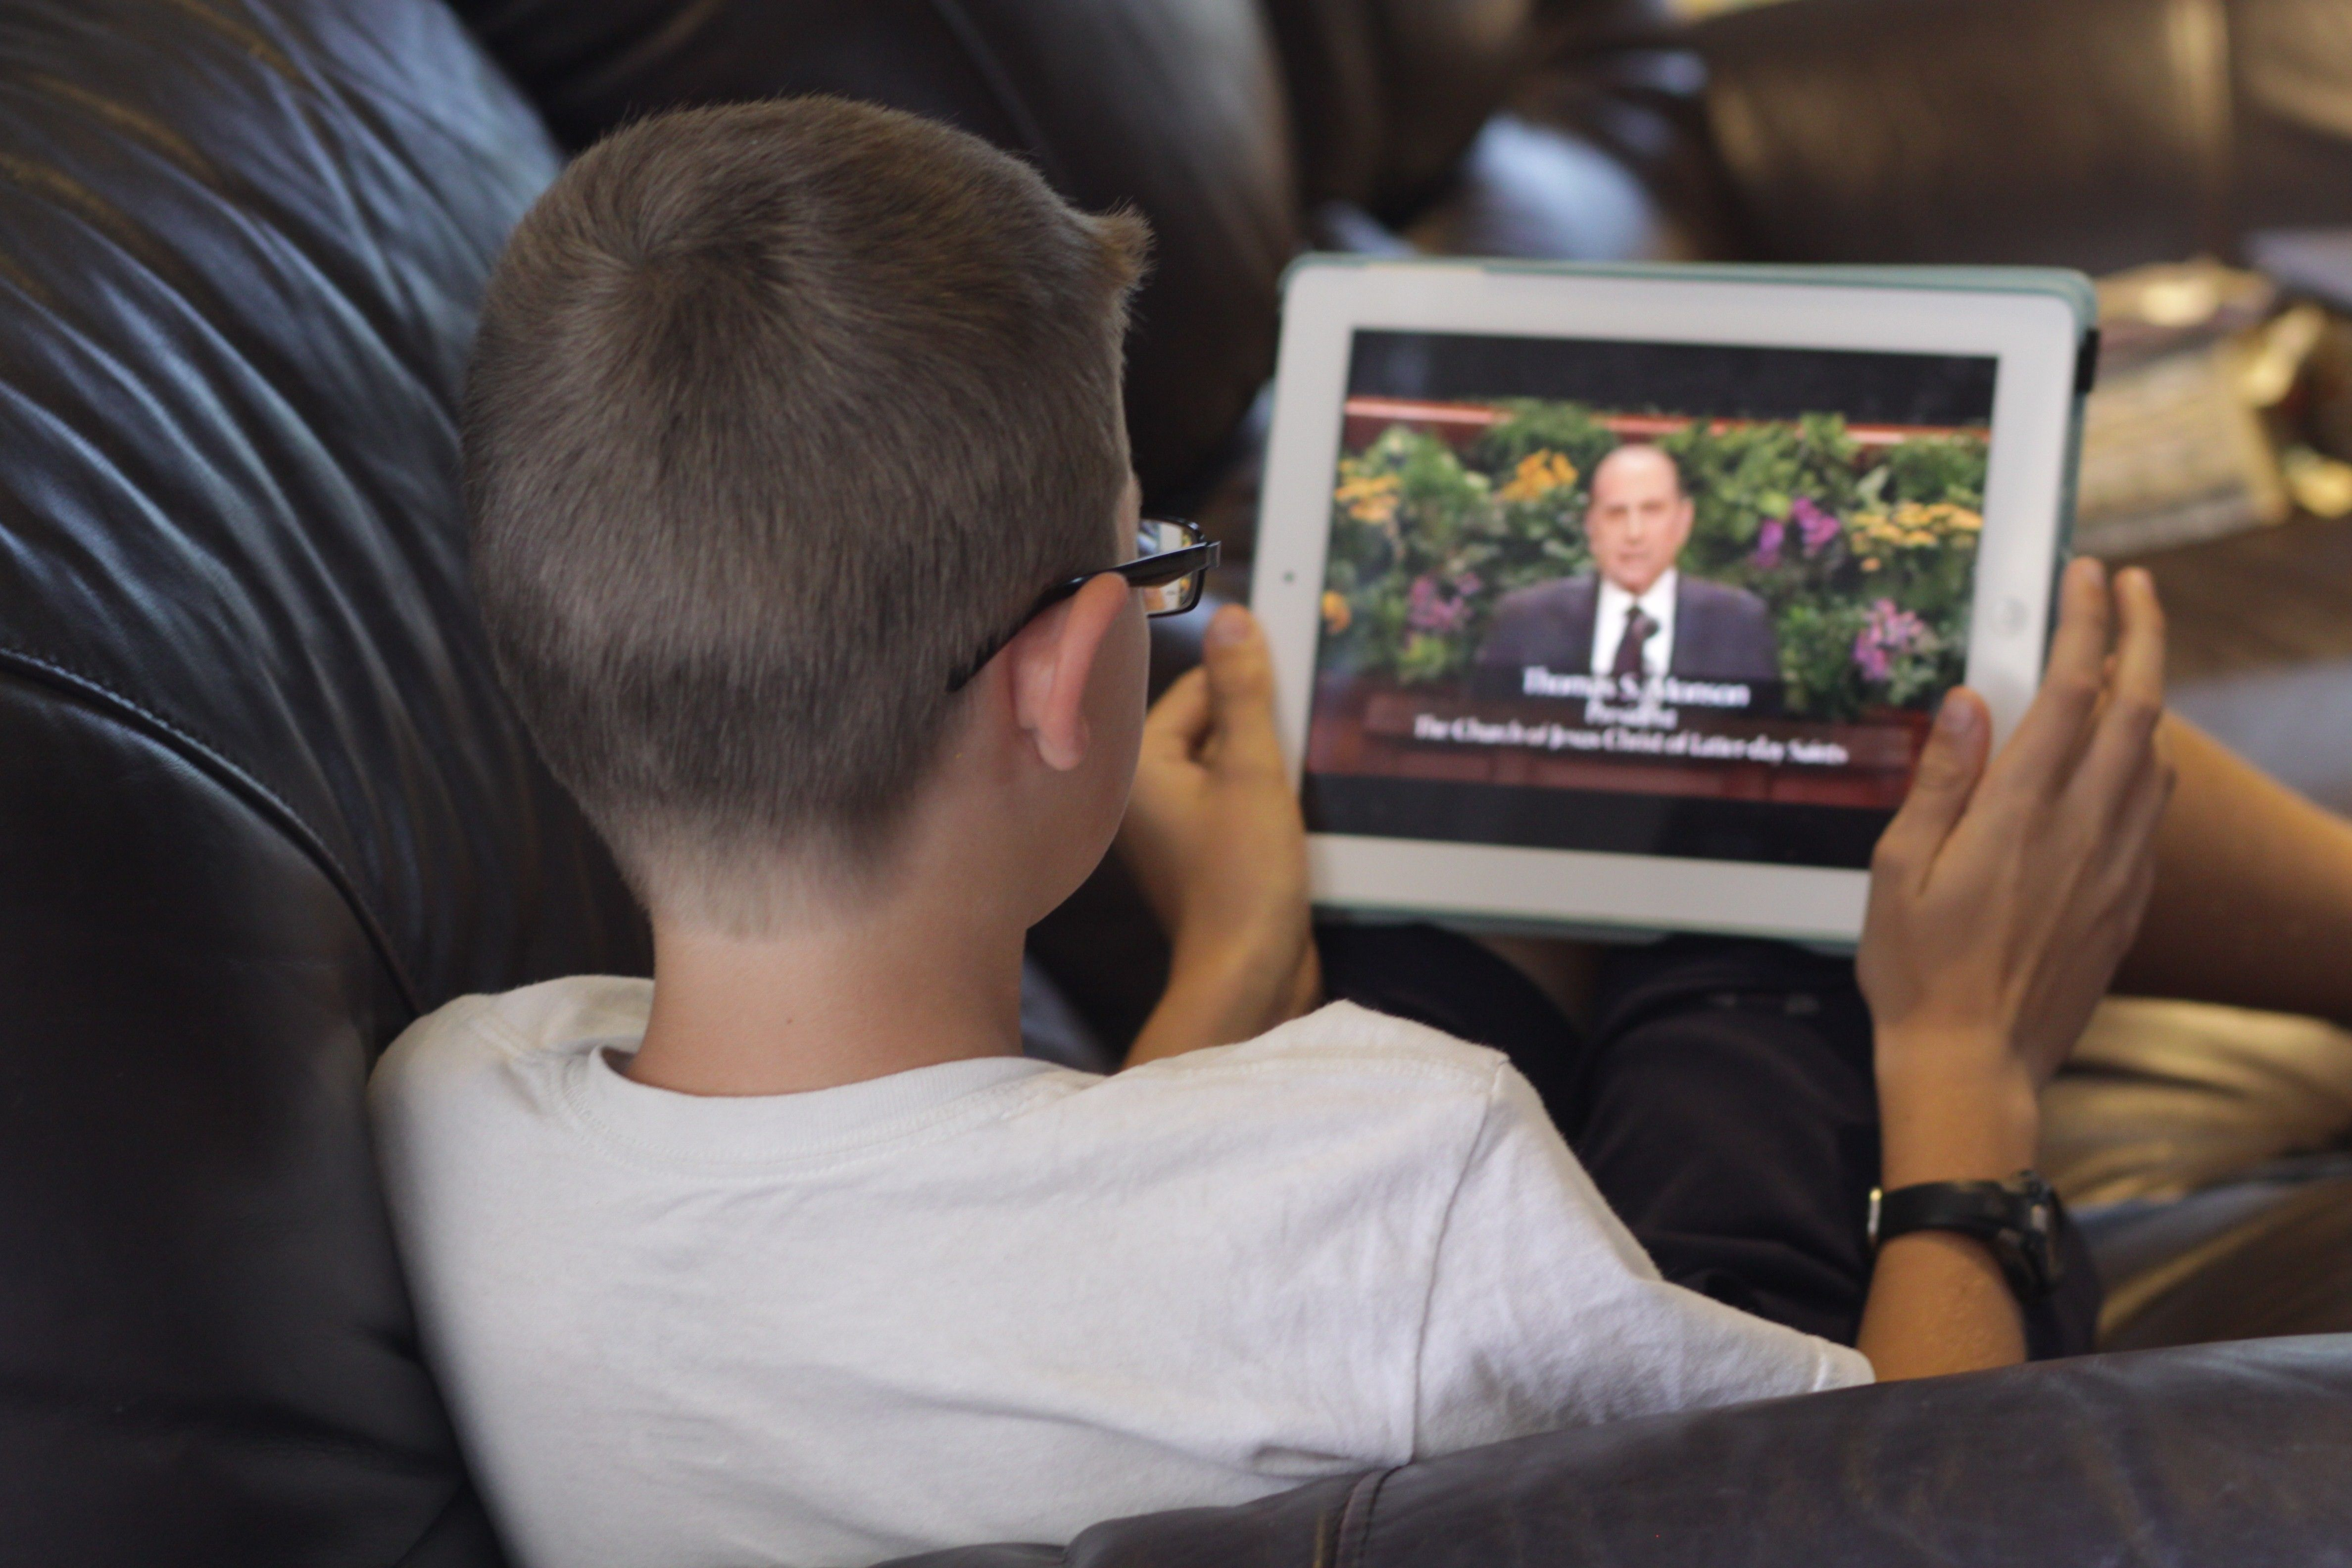 A boy sitting at home watching general conference on his tablet.